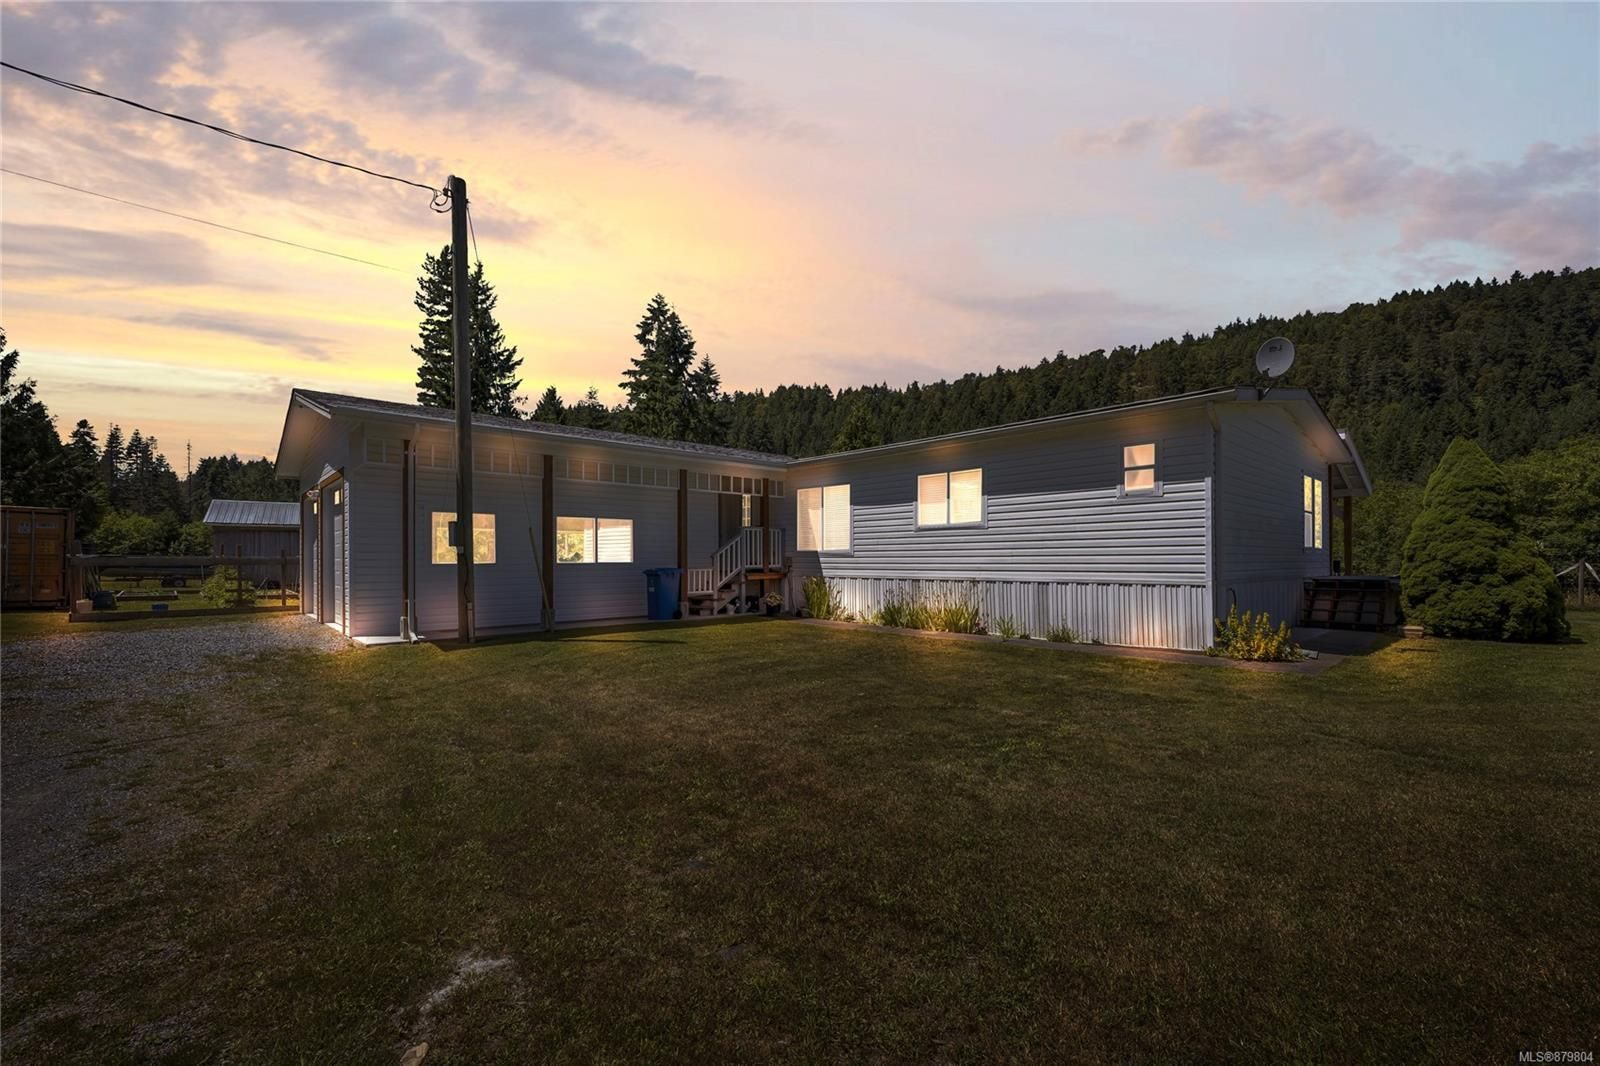 Photo 39: Photos: 3596 Riverside Rd in : ML Cobble Hill Manufactured Home for sale (Malahat & Area)  : MLS®# 879804